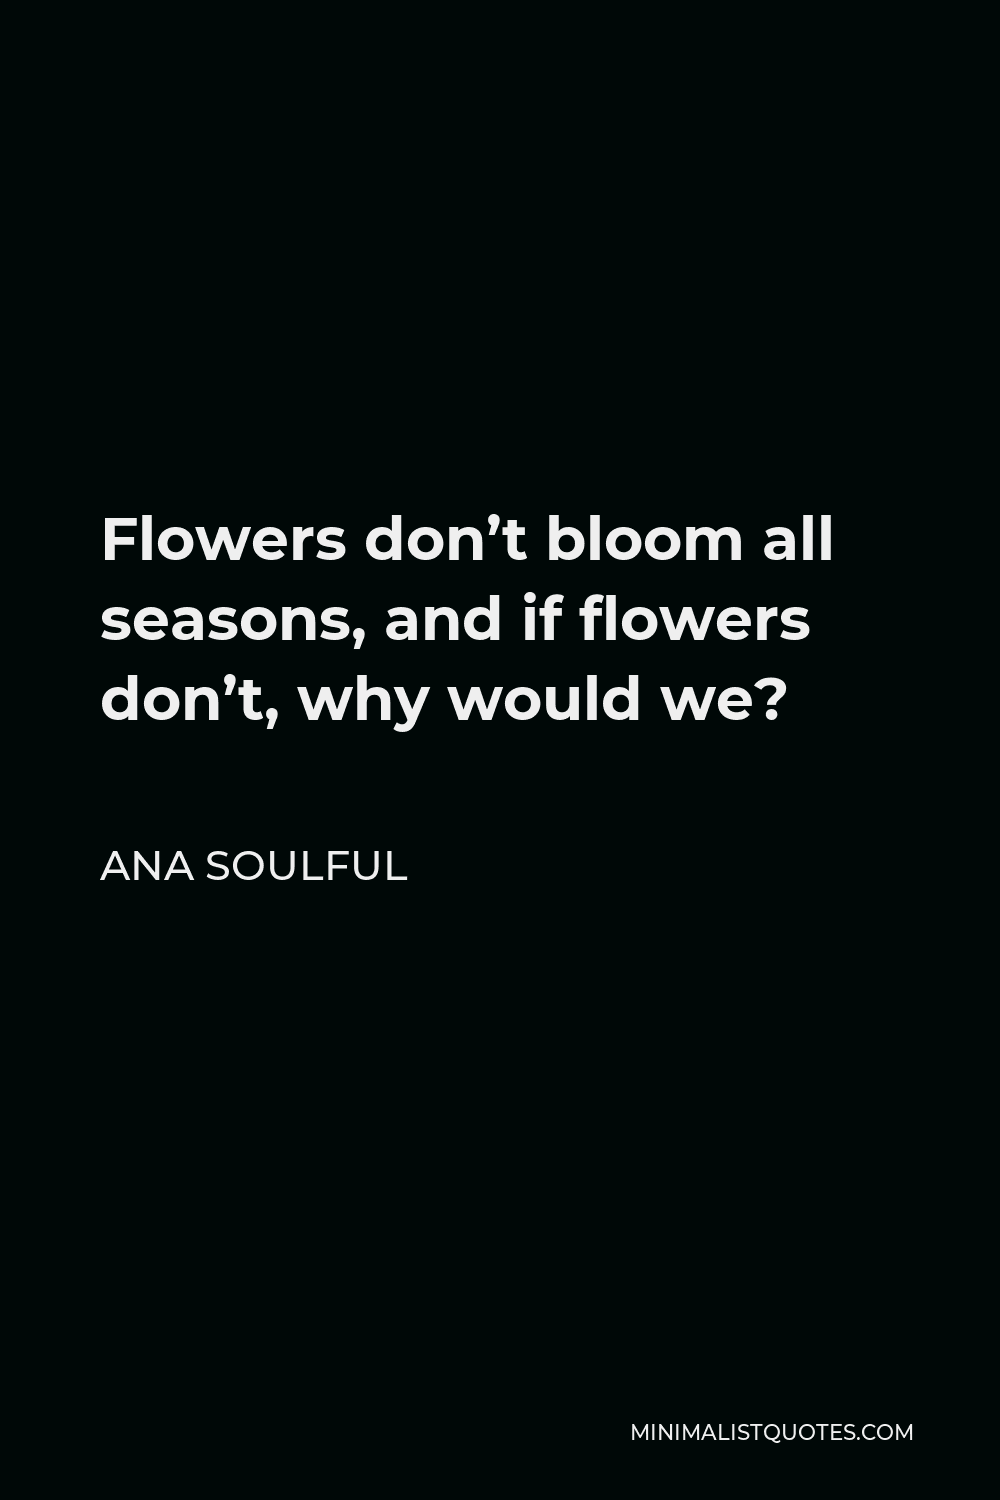 Ana Soulful Quote - Flowers don't bloom all seasons, and if flowers don't, why would we?